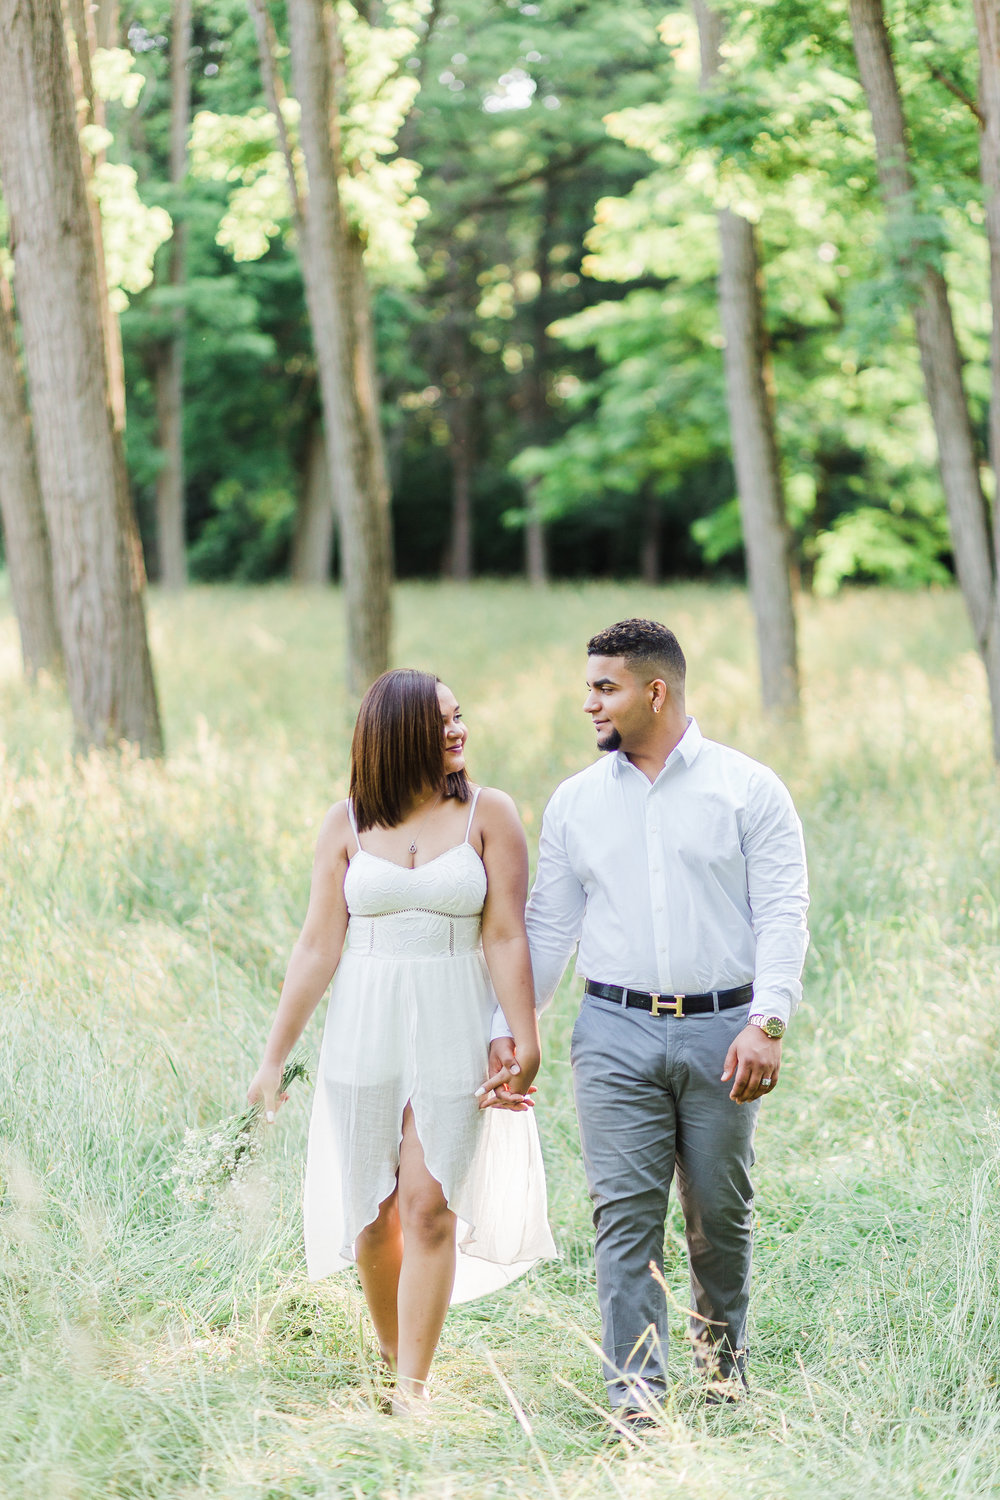 Alburtis Pennsylvania Lockridge Park Summer Engagement Session Lytle Photo Co (18 of 72).jpg